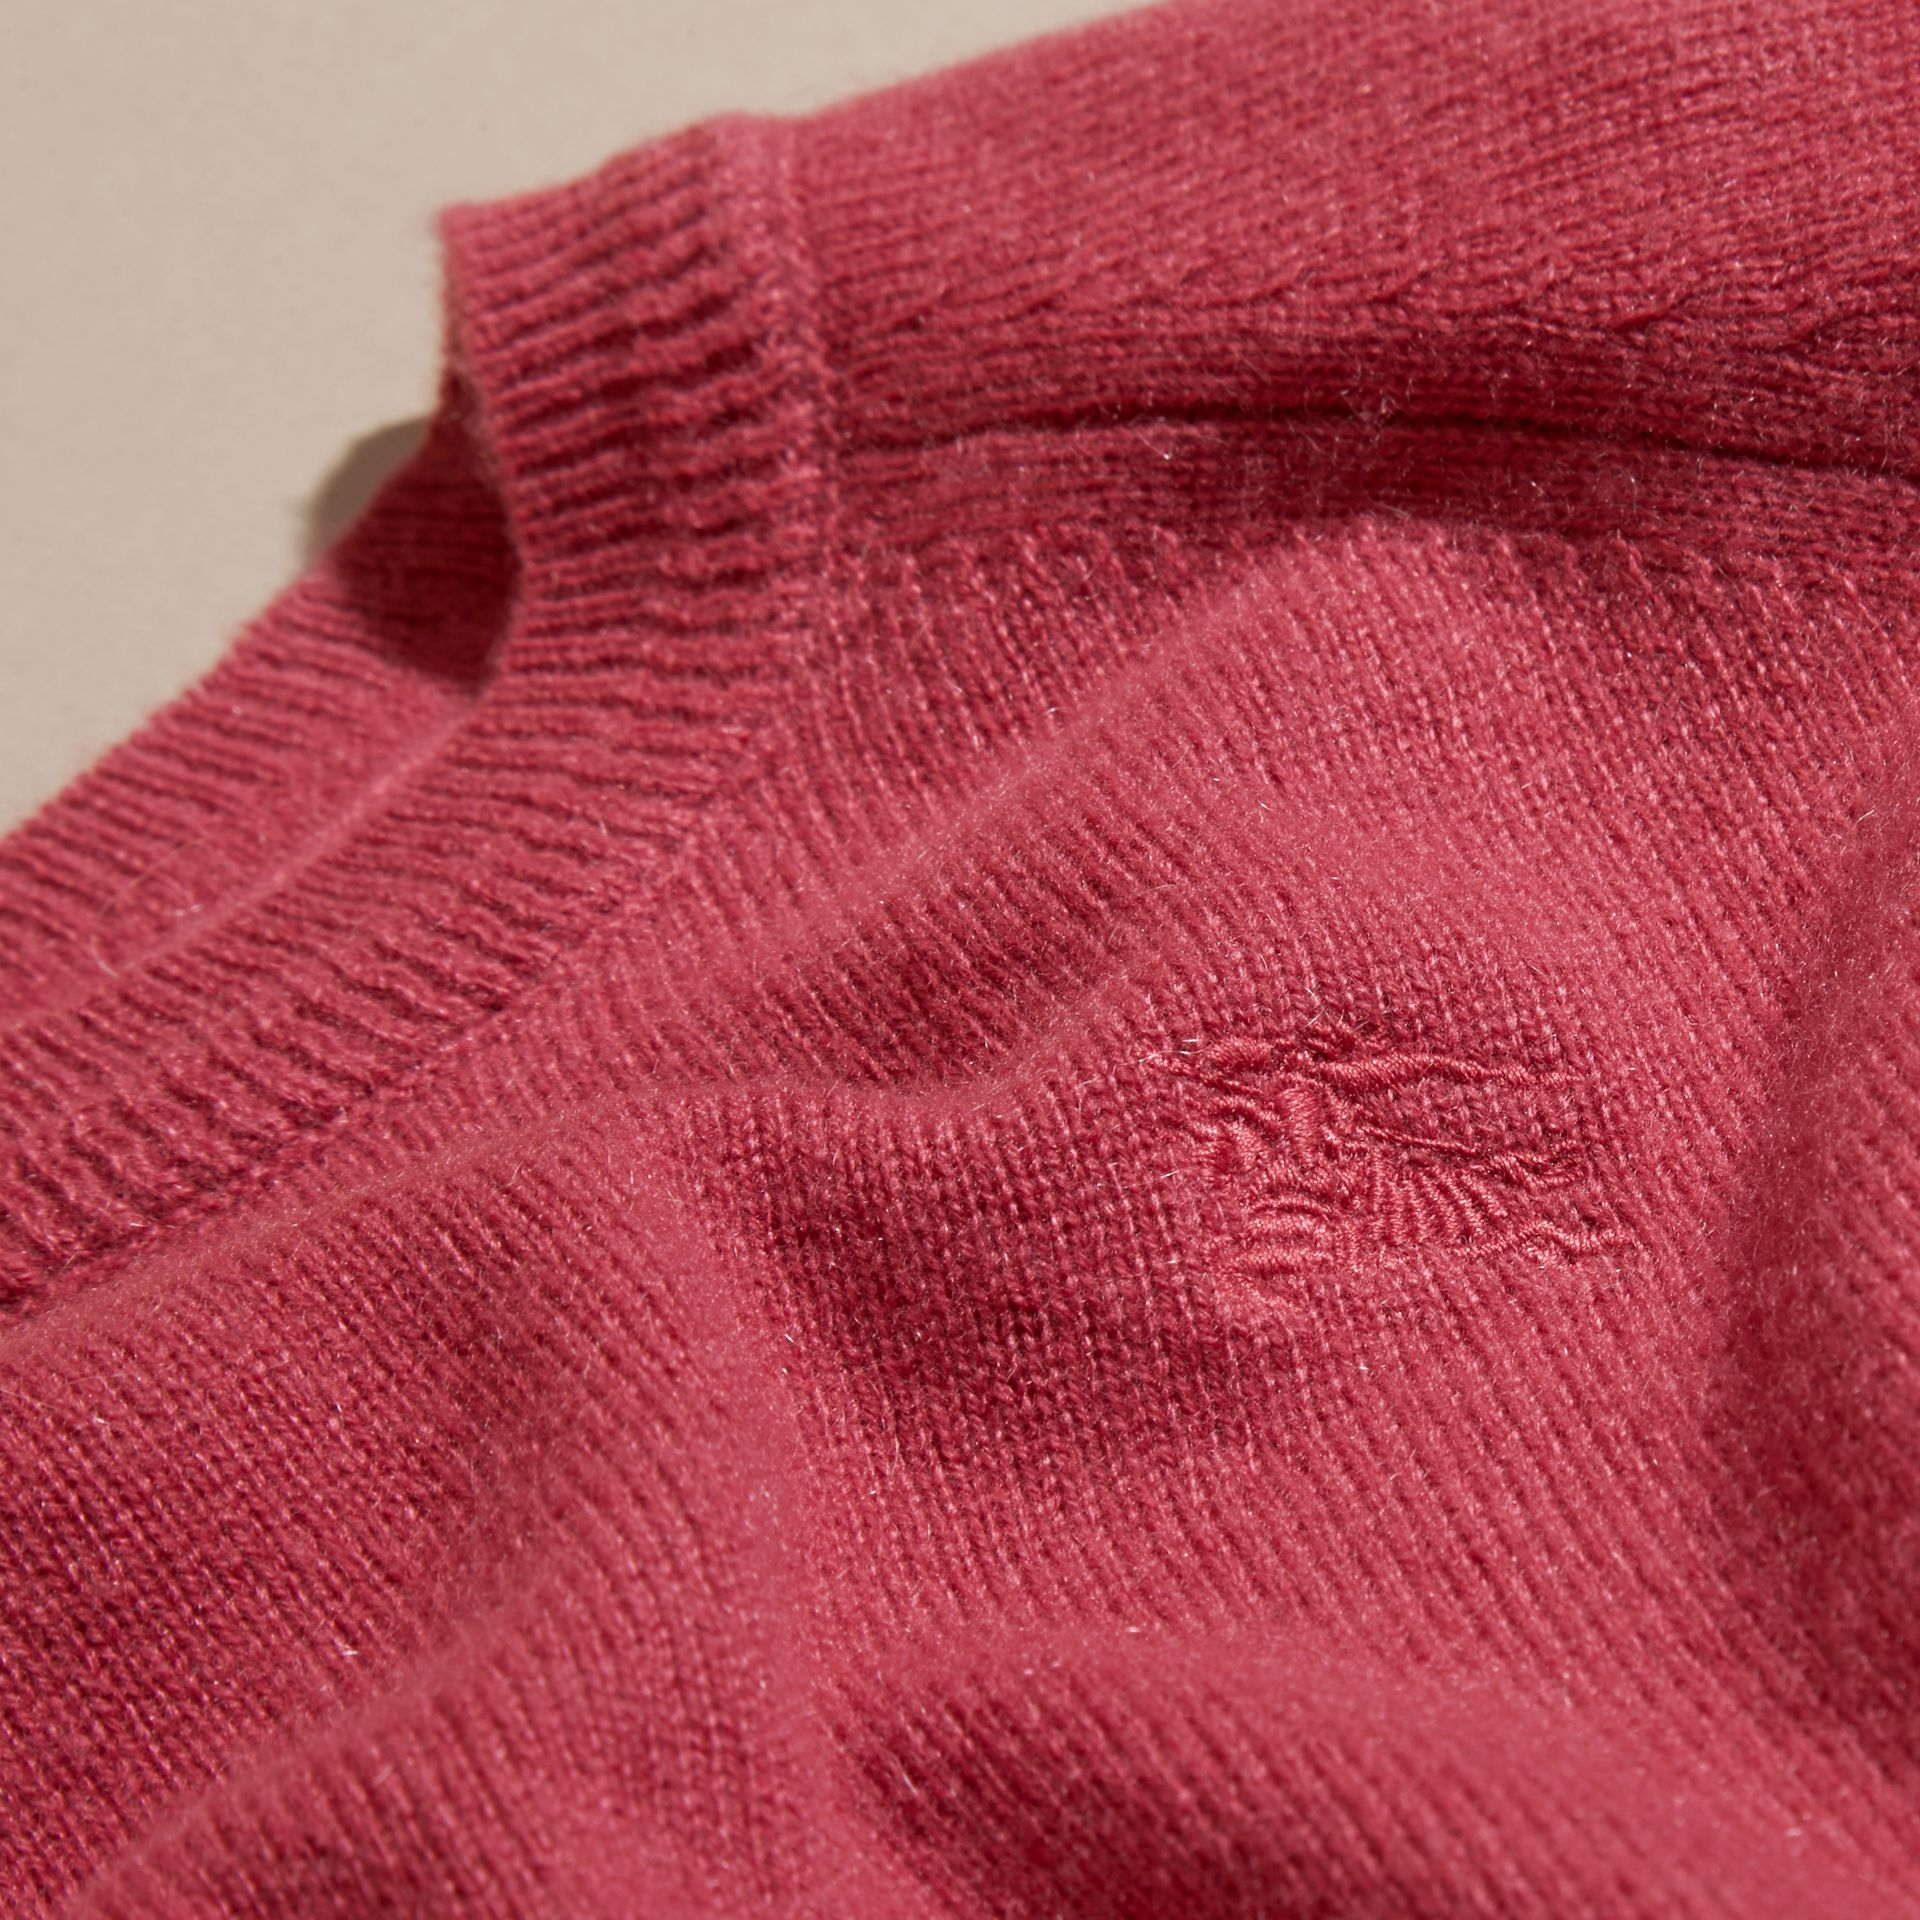 Peony rose Check Cuff Cashmere Sweater Peony Rose - gallery image 2